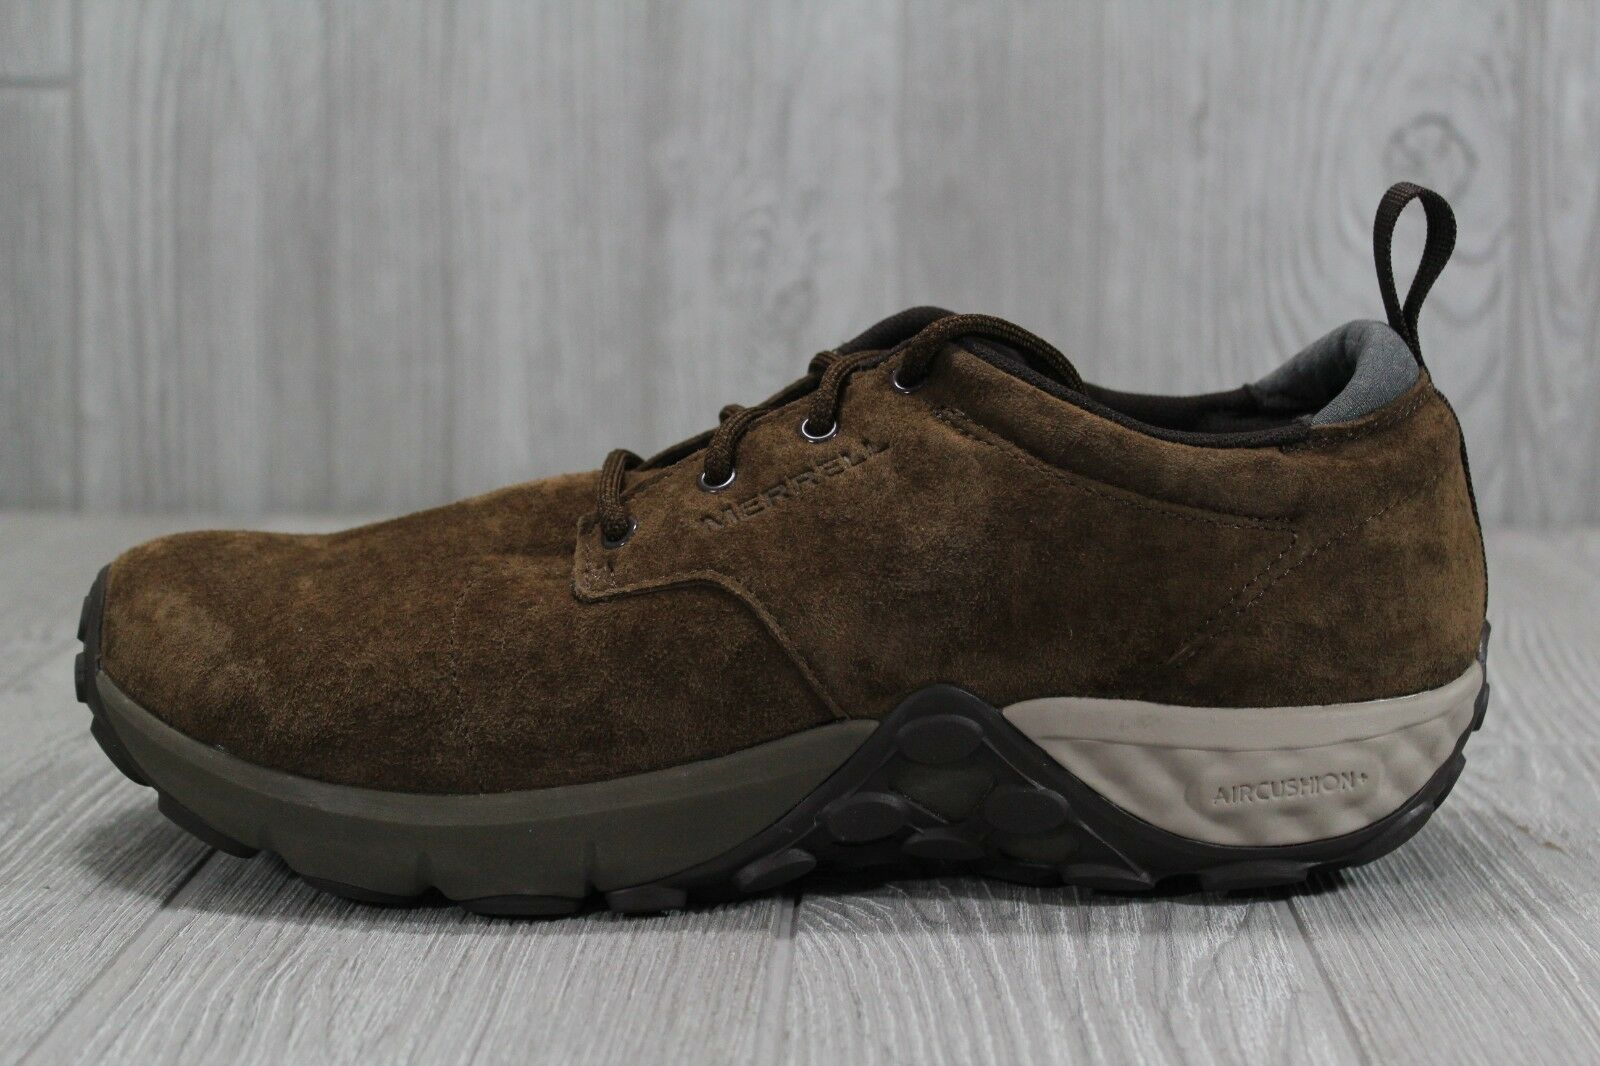 37 New Merrell Men's Jungle Lace AC+ Suede Fashion shoes Dark Earth Brown 9 12